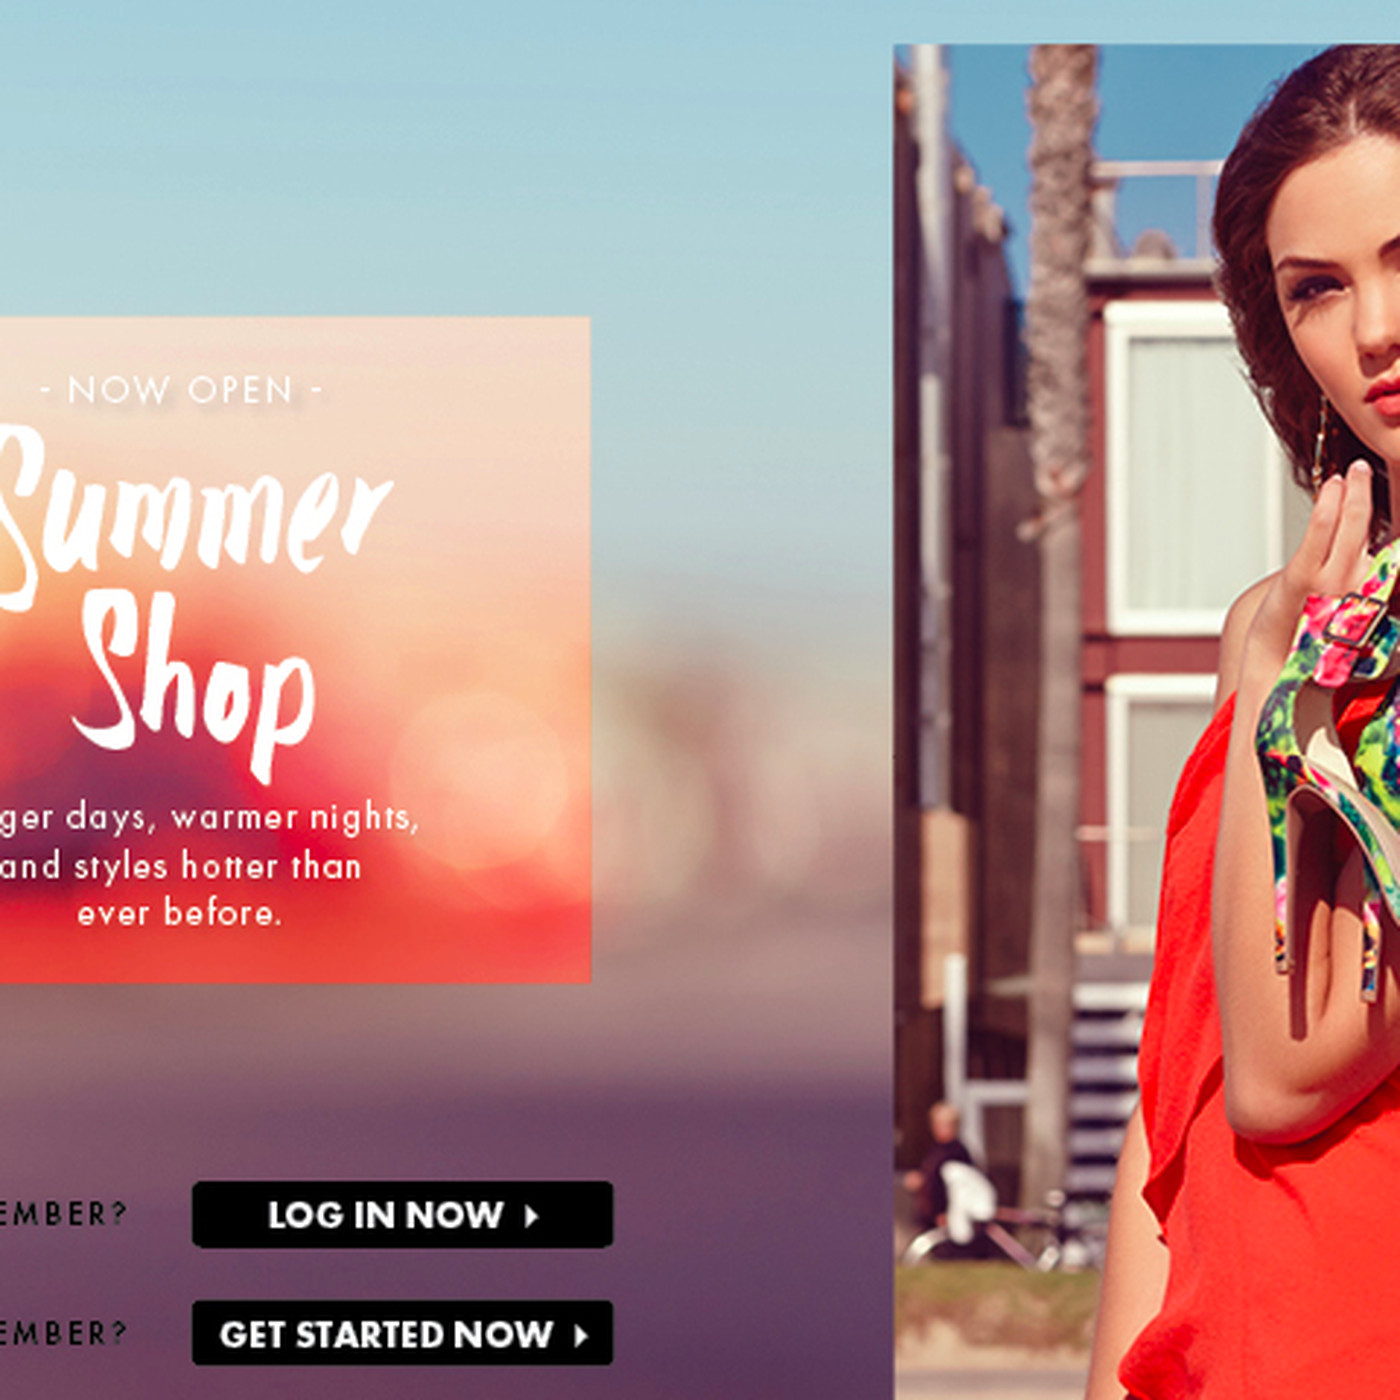 1b4d614b JustFab Seeking $50 Million to $100 Million Investment Ahead of Possible  IPO. The online shoe retailer has ...